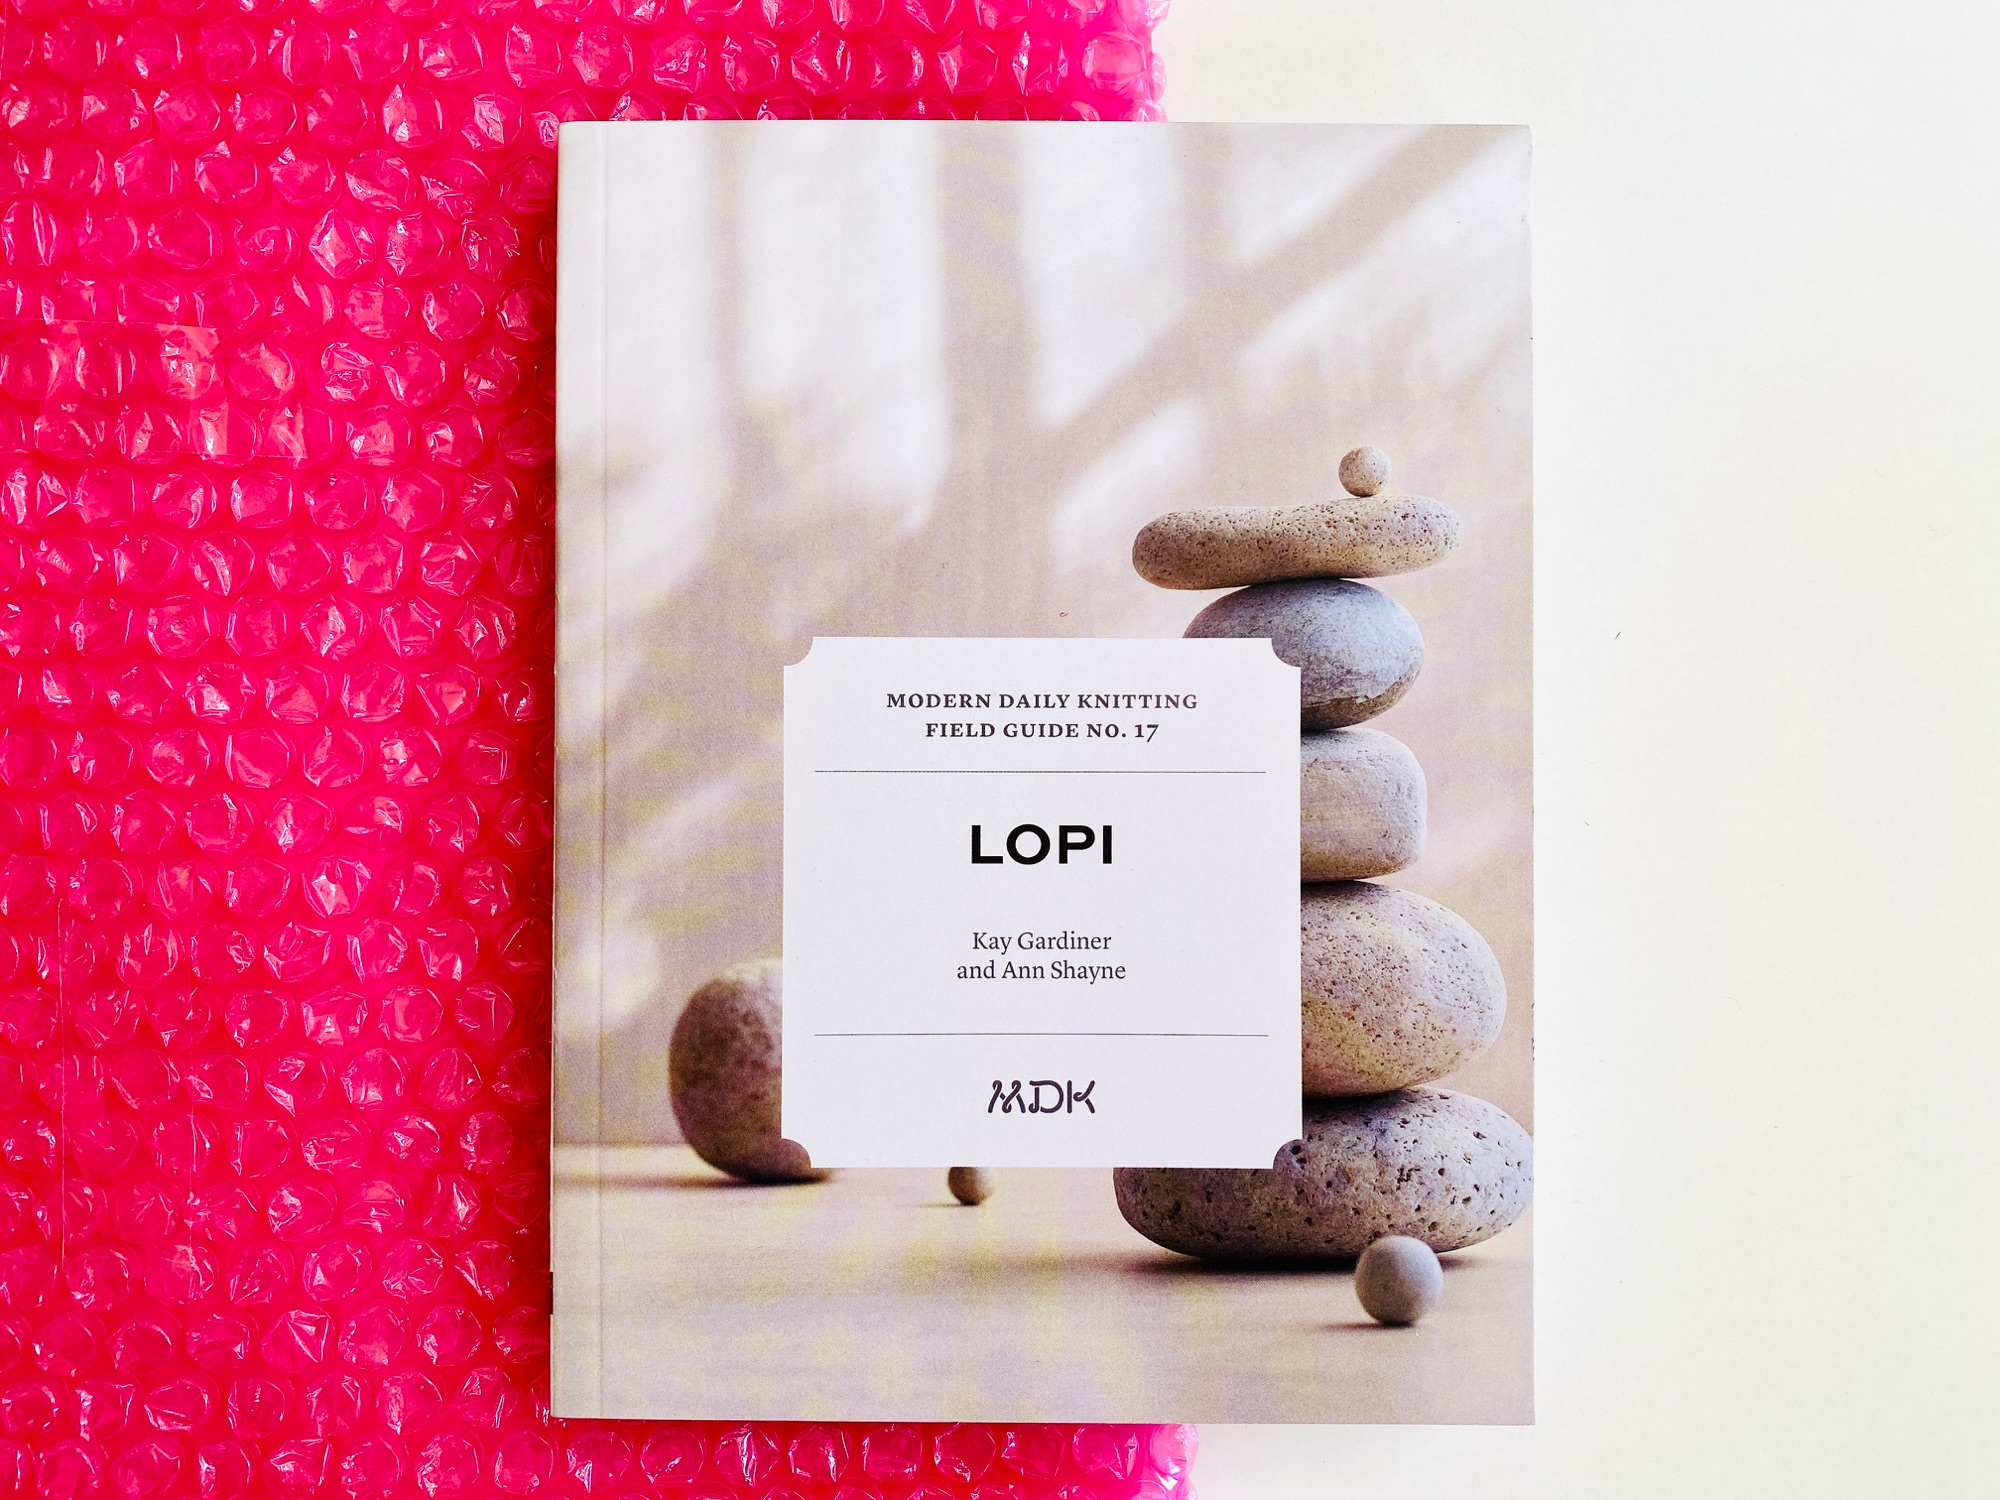 Cover image of Modern Daily Knitting Field Guide no 17 Lopi